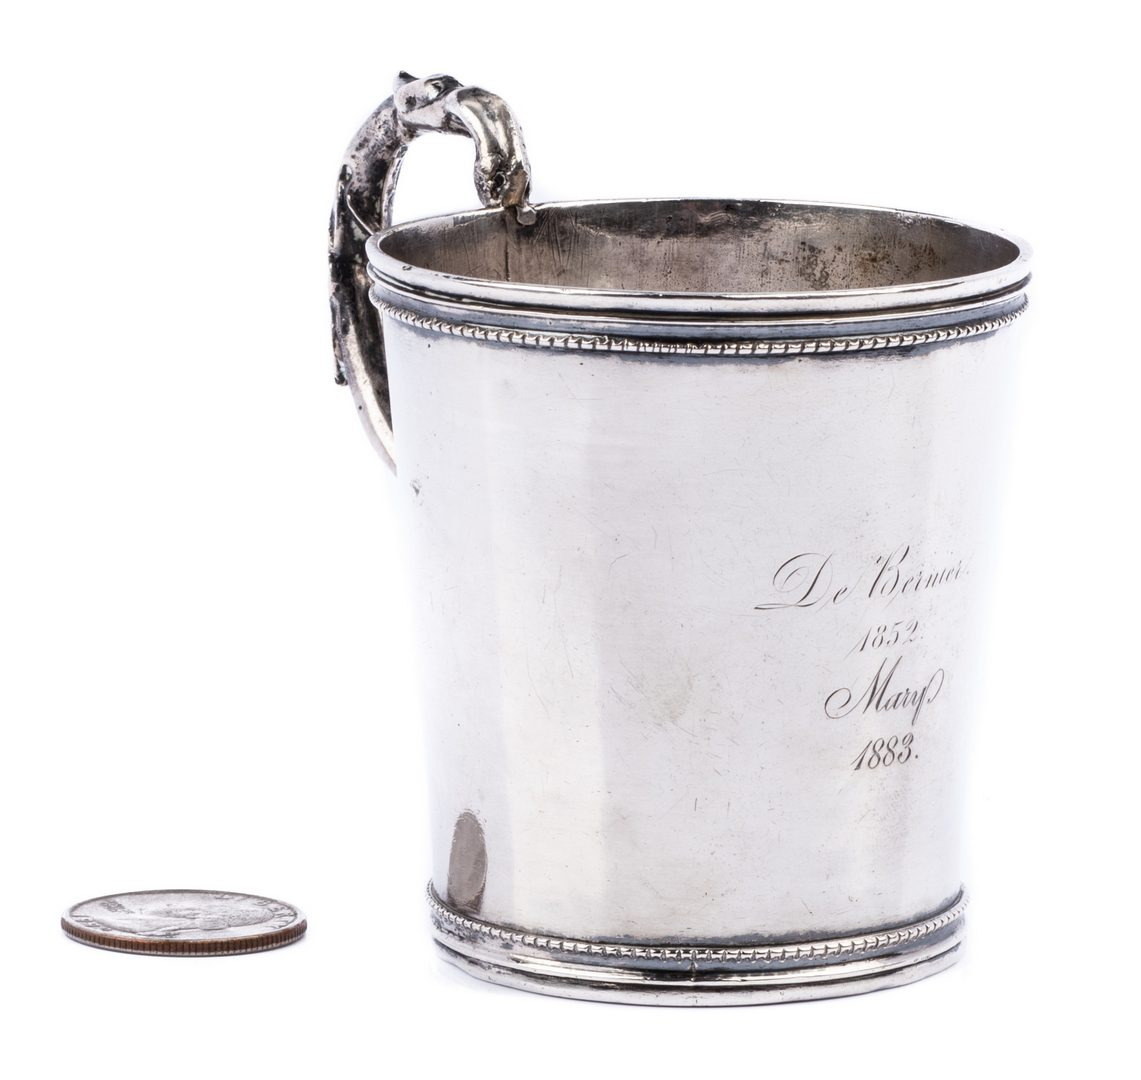 Lot 277: South Carolina Coin Silver Cup, Ewan